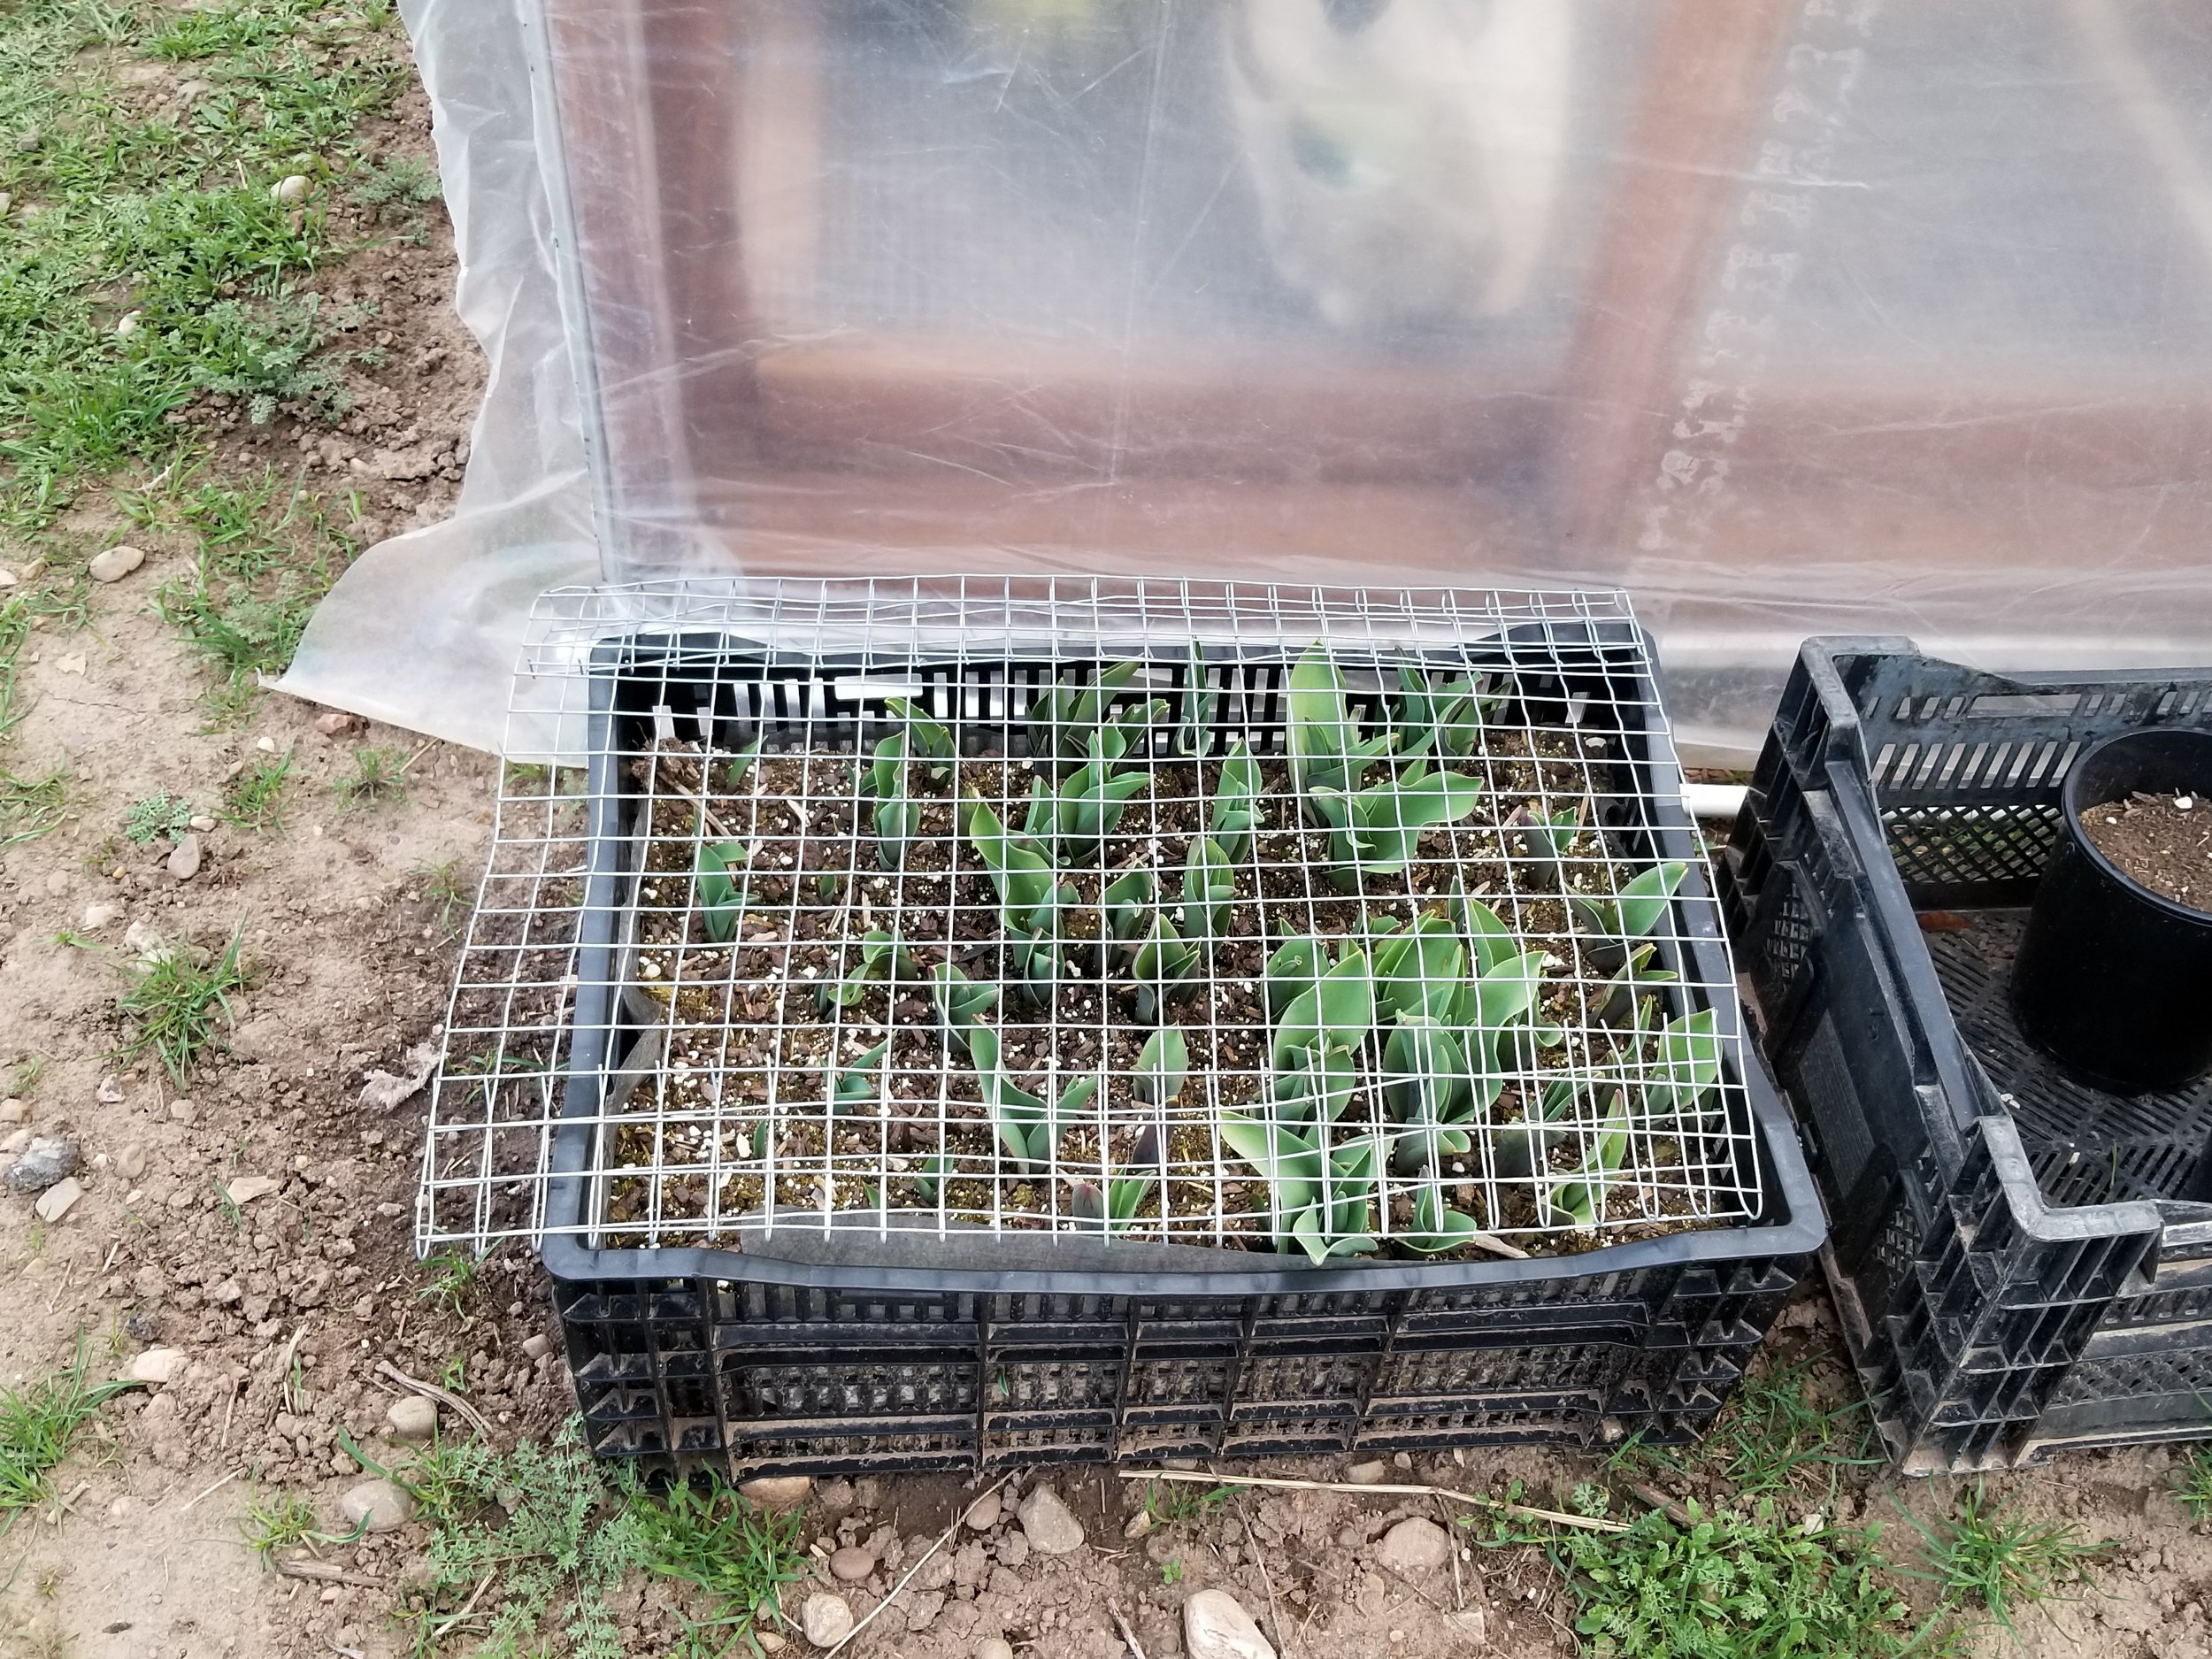 My crate tulips are coming up! I'm going to move them into the greenhouse this week, now that we've got the one side rolled up, so that I can take off the wire without fear of DEER.